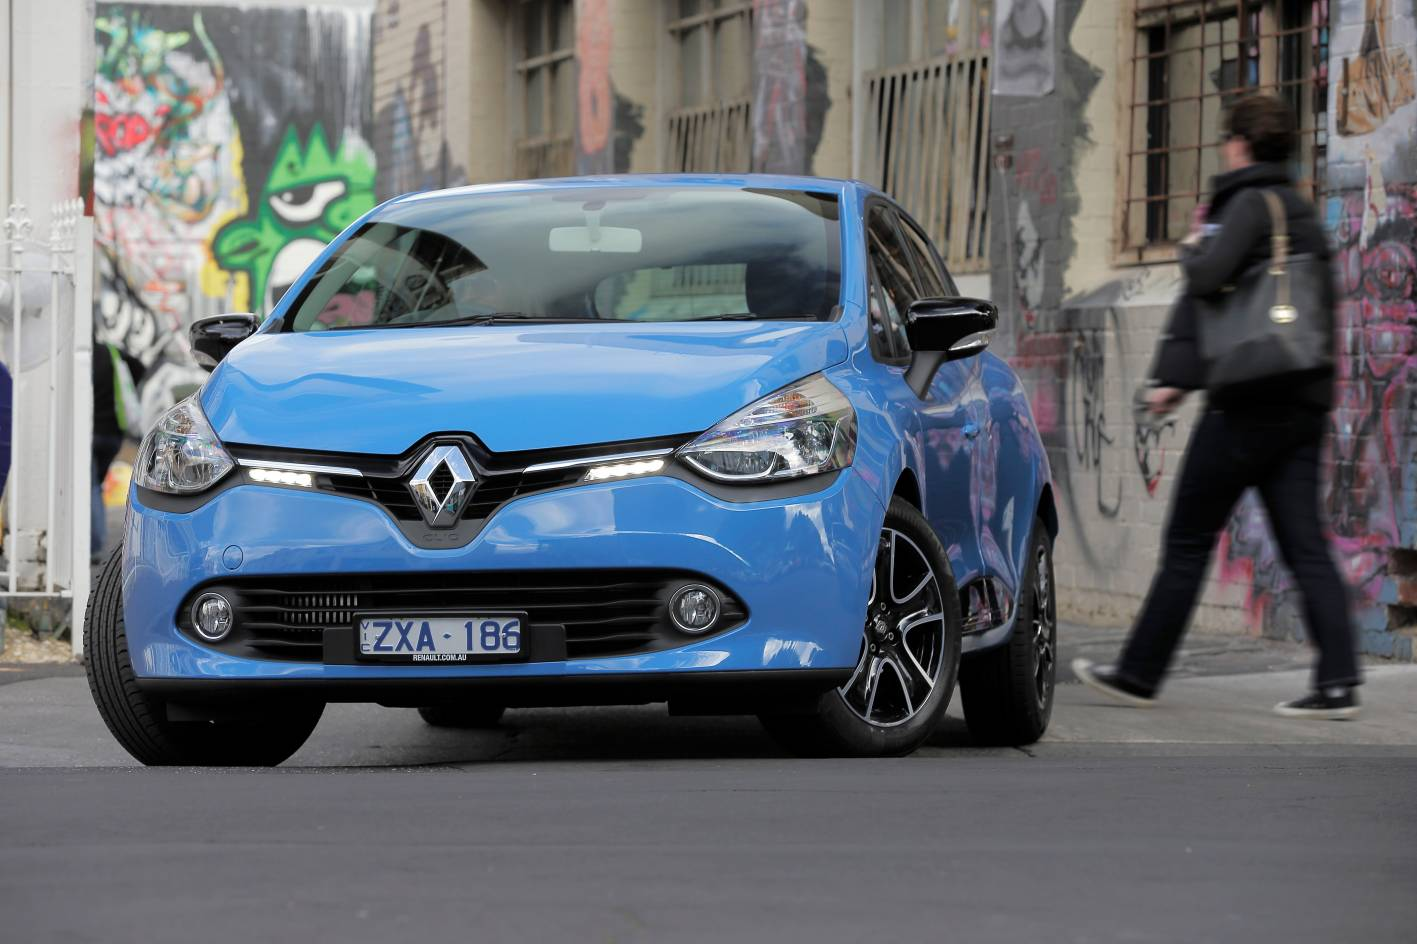 Renault Cars - News: Clio 4 pricing and specifications